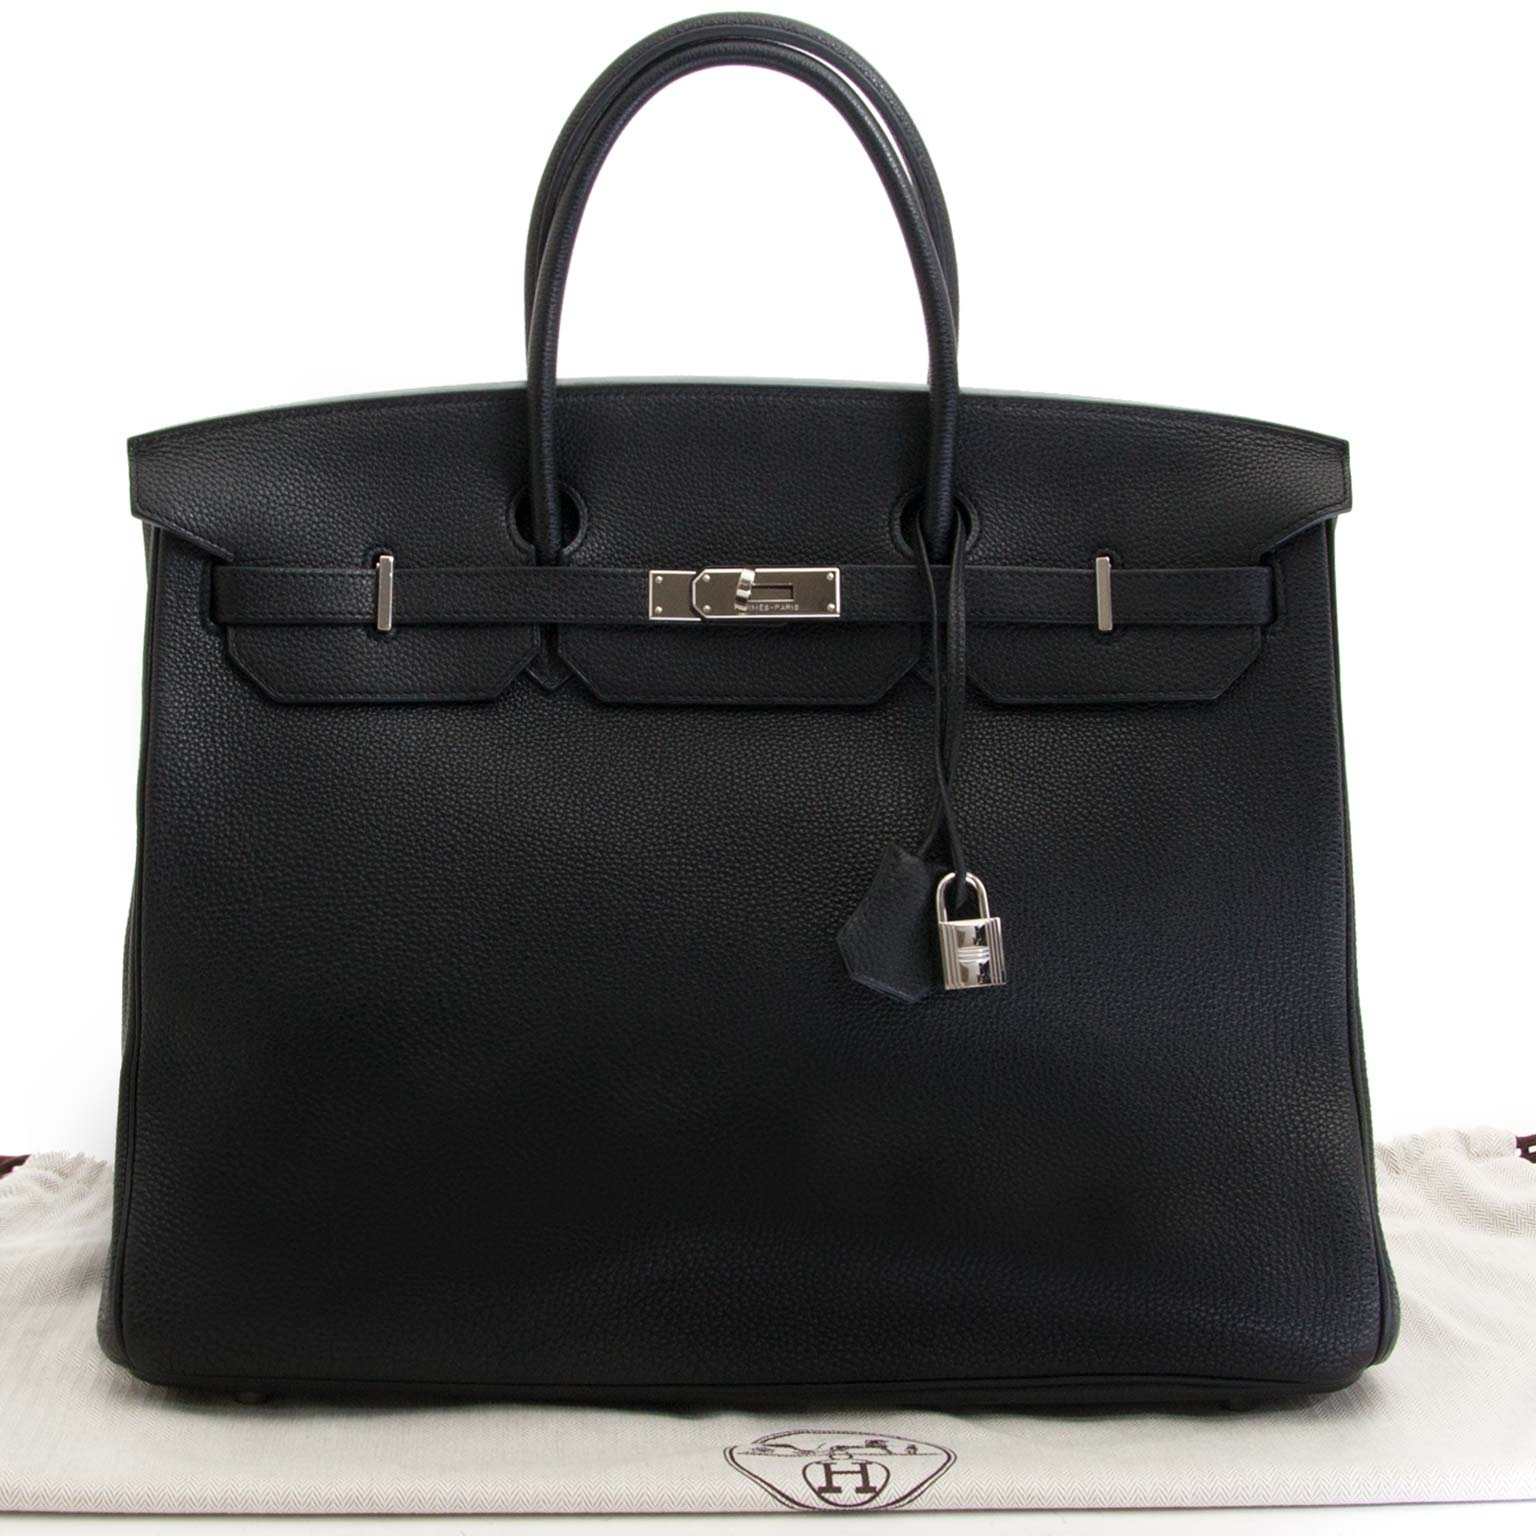 Hermès Birkin 40cm Black Togo PHW for sale at Labellov exclusively